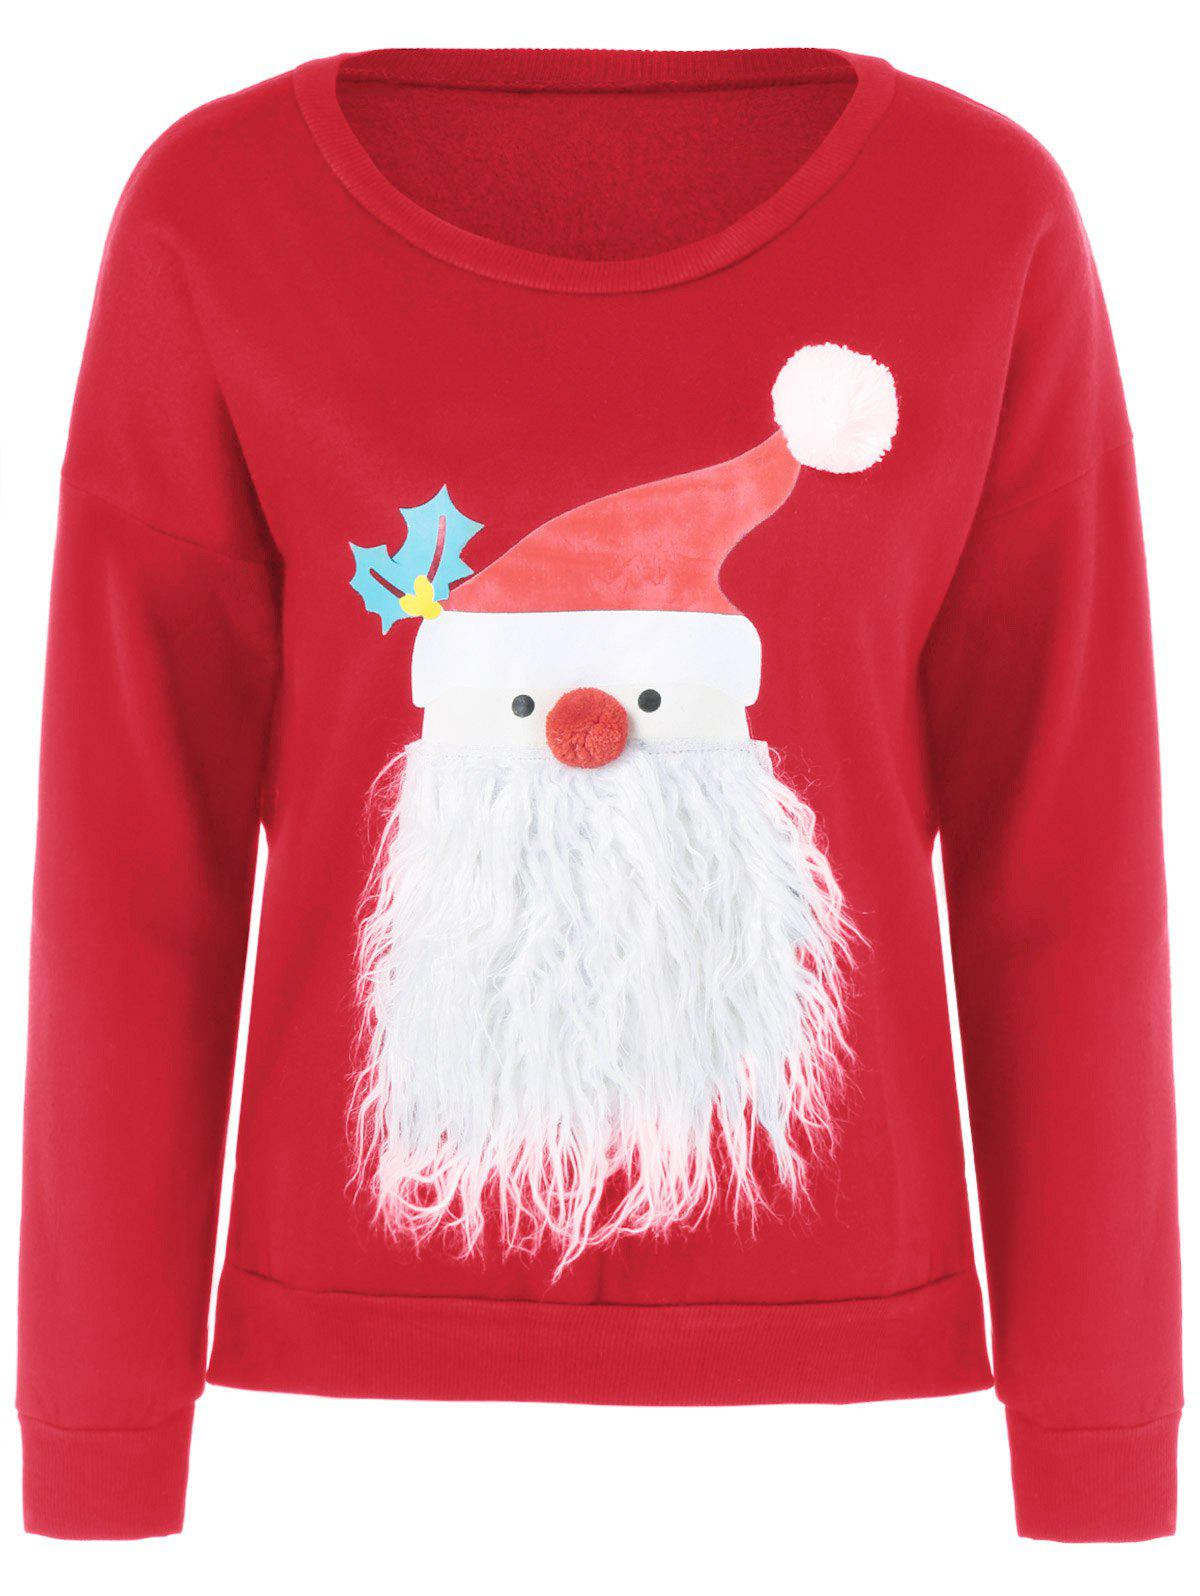 Christmas Fuzzy SweaterWOMEN<br><br>Size: M; Color: RED; Material: Polyester; Shirt Length: Regular; Sleeve Length: Full; Style: Casual; Pattern Style: Print; Season: Fall,Spring,Winter; Weight: 0.252kg; Package Contents: 1 x Sweatshirt;